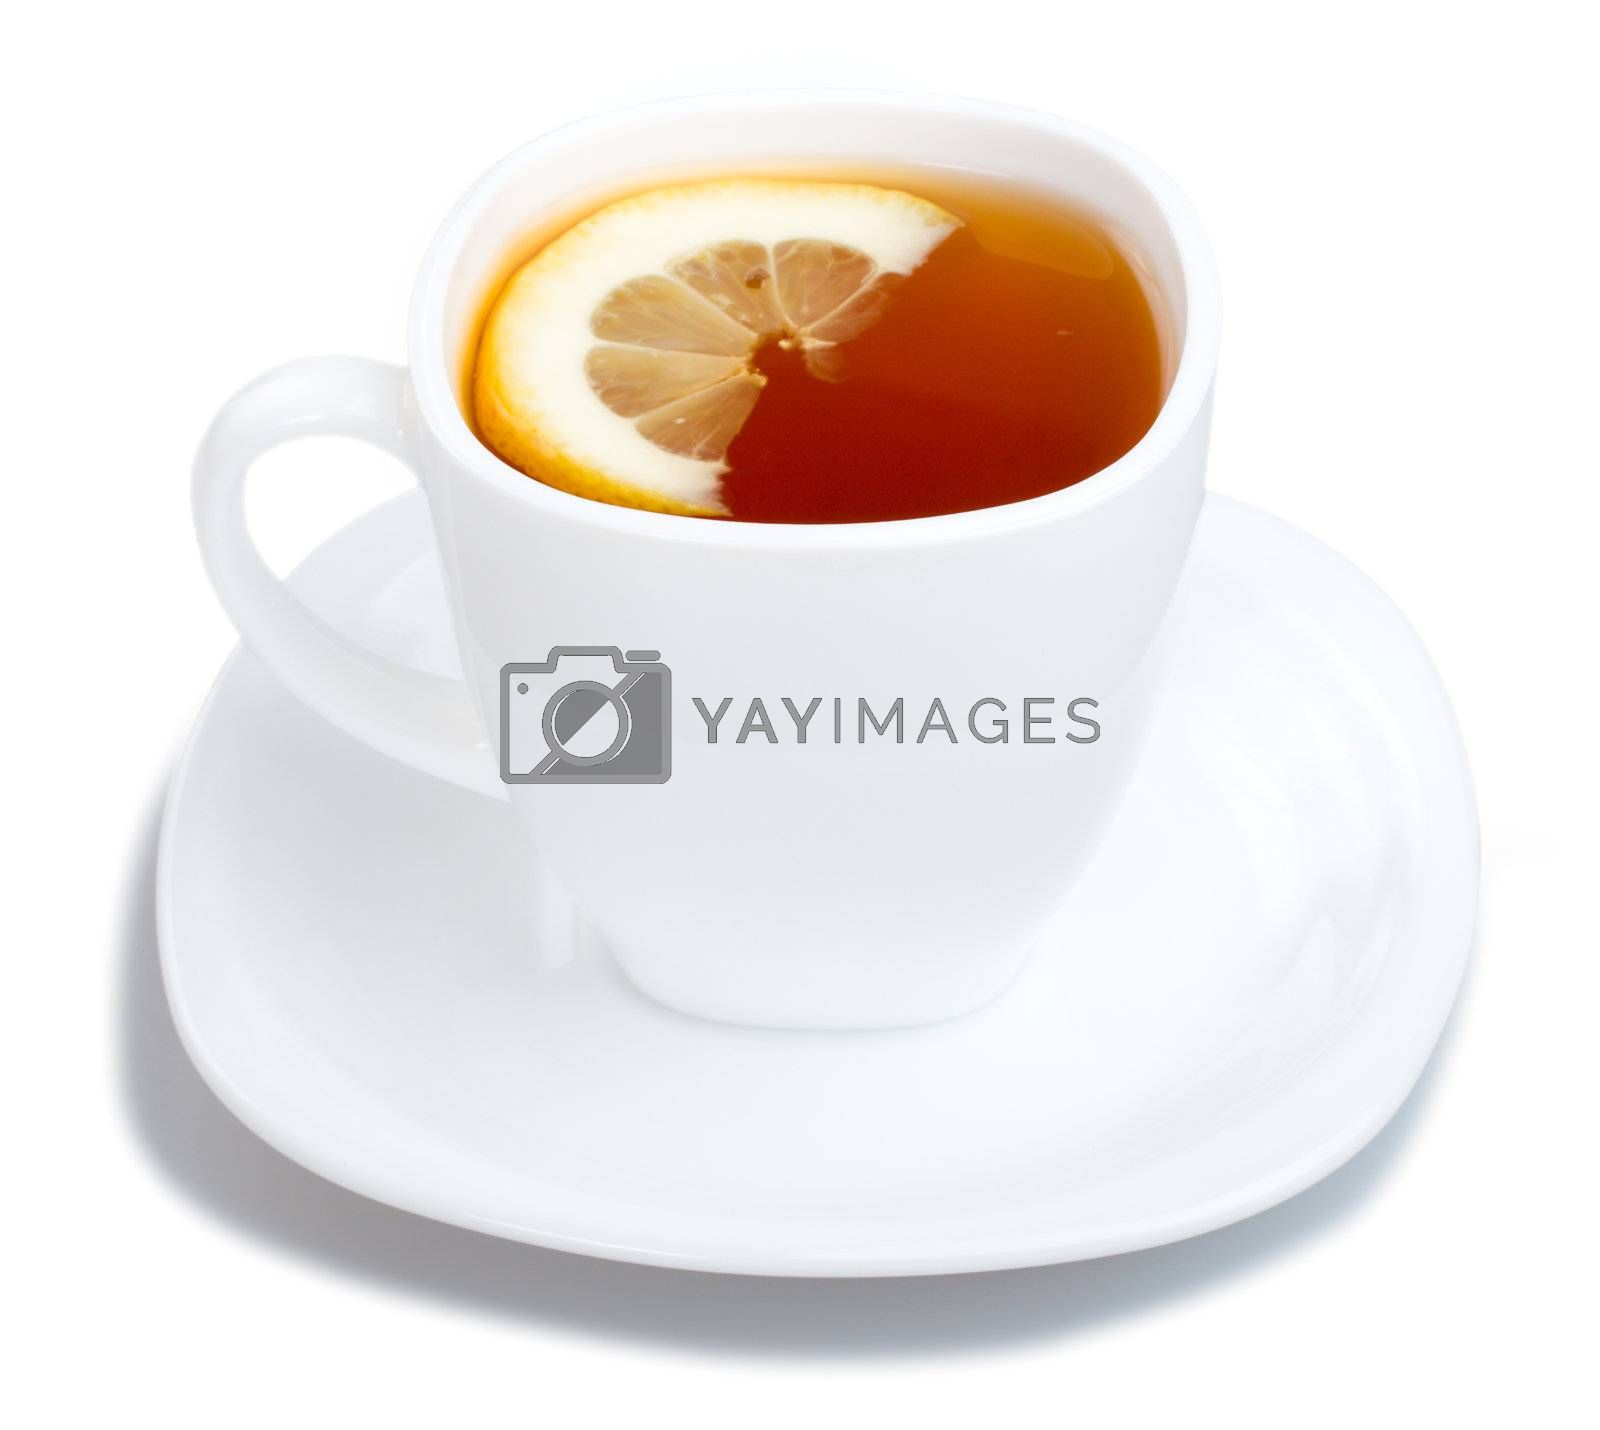 Royalty free image of cup of tea with lemon and saucer on white by Alekcey